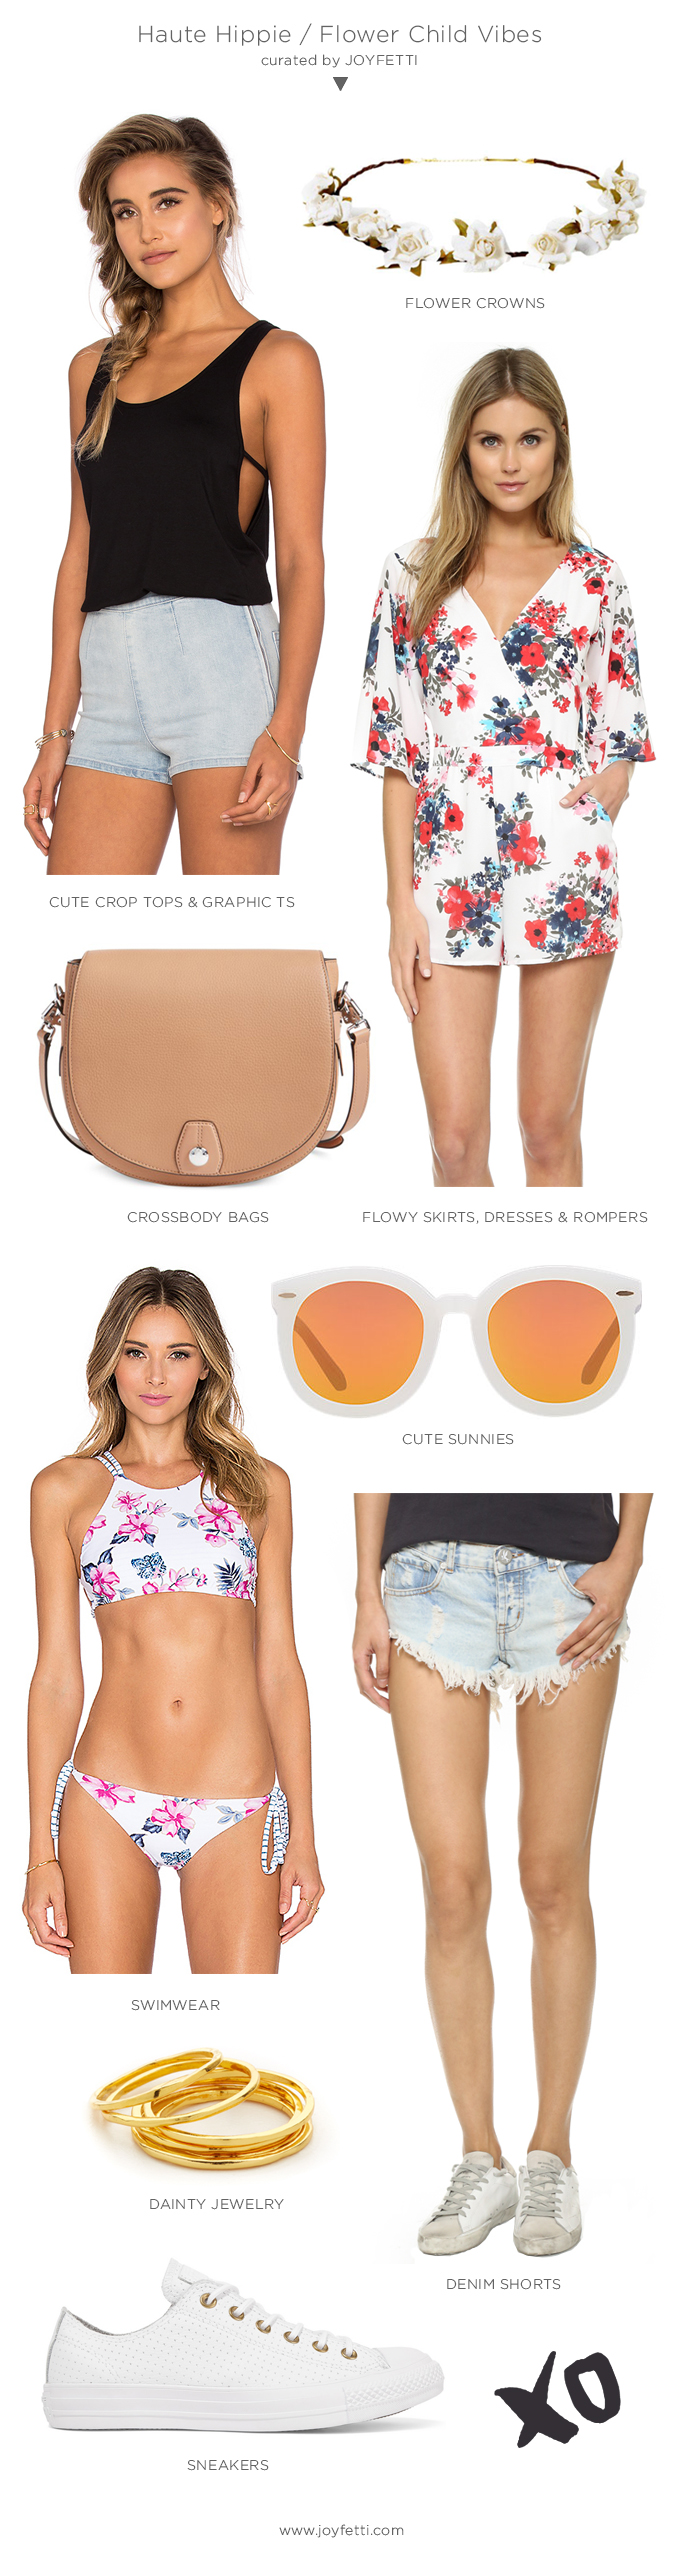 Haute Hippie, Flower Child Vibes_Festival Inspired Outfits_joyfetti.com